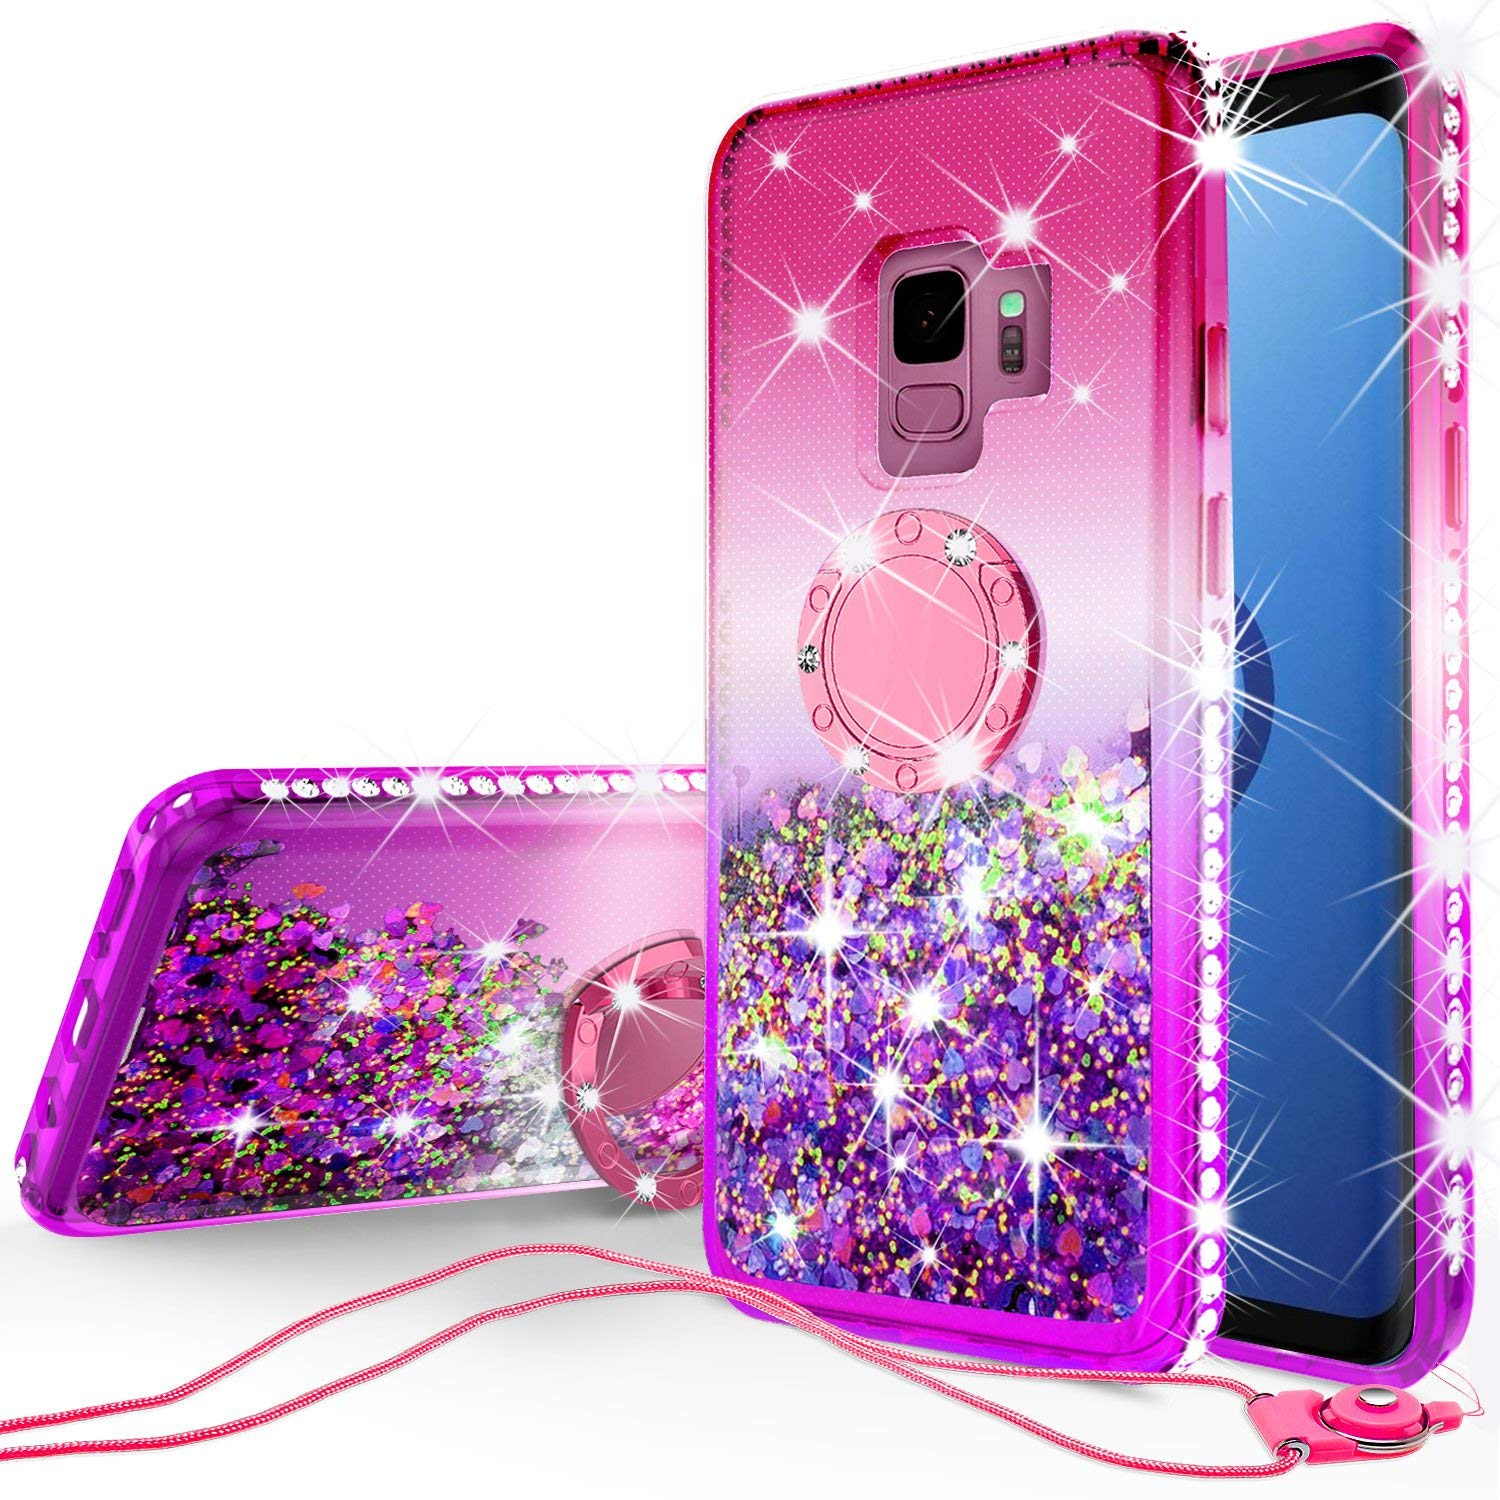 Samsung Galaxy S9 Plus Case, Liquid Floating Quicksand Glitter Phone Case Girls Kickstand,Bling Diamond Bumper Ring Stand Protective Galaxy S9 Plus Case for Girl Women - Hot Pink